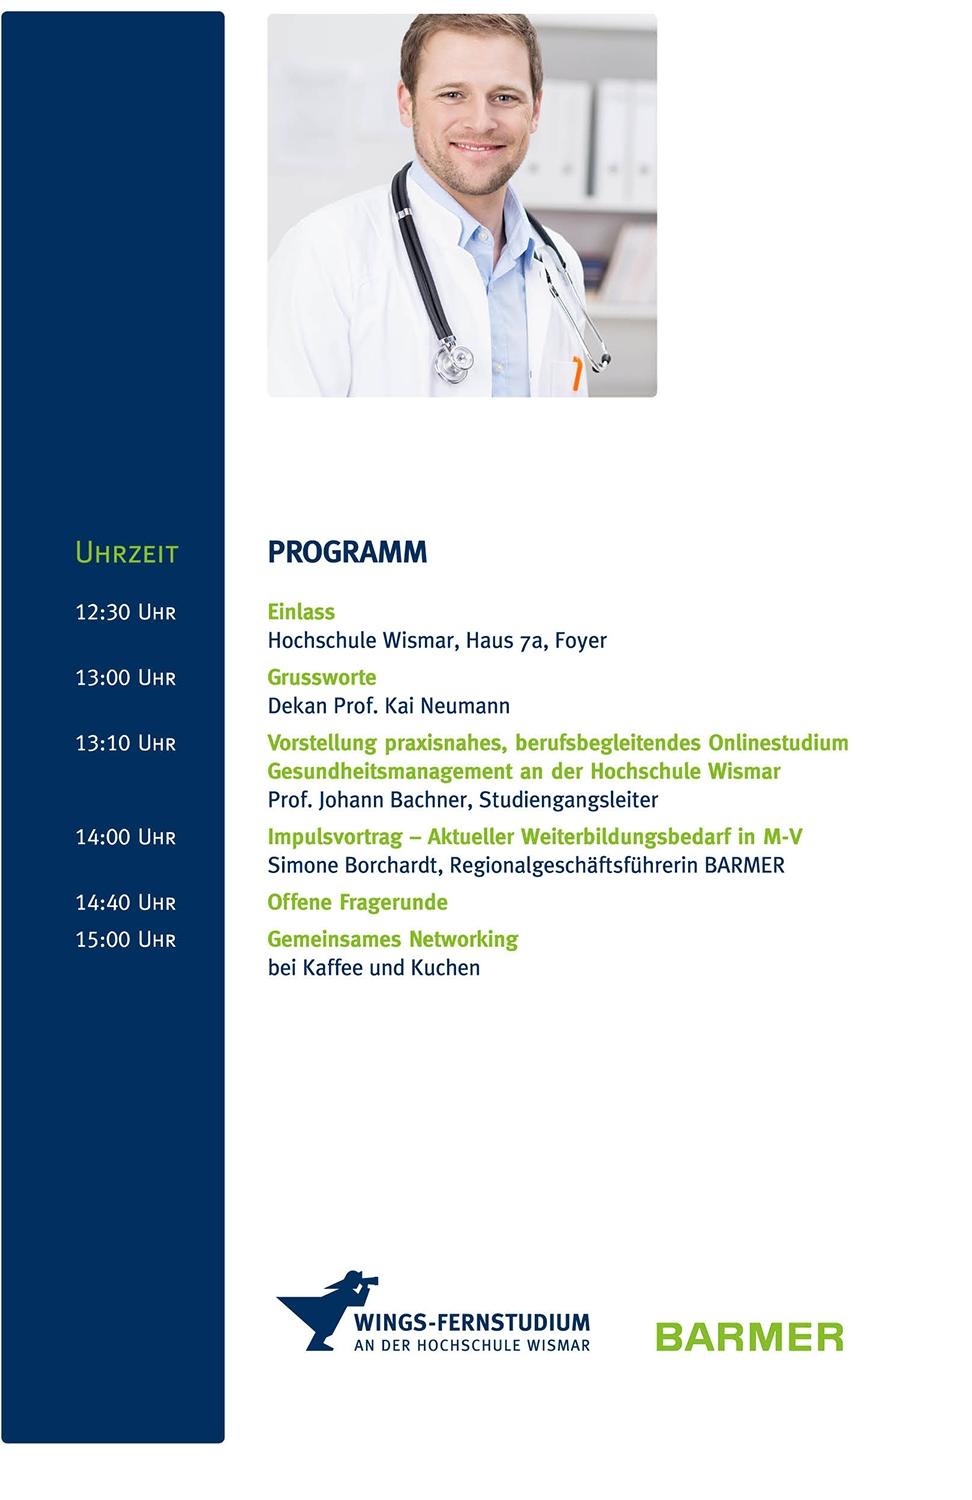 Programm Symposium Gesundheitsmanagement | WINGS-Fernstudium